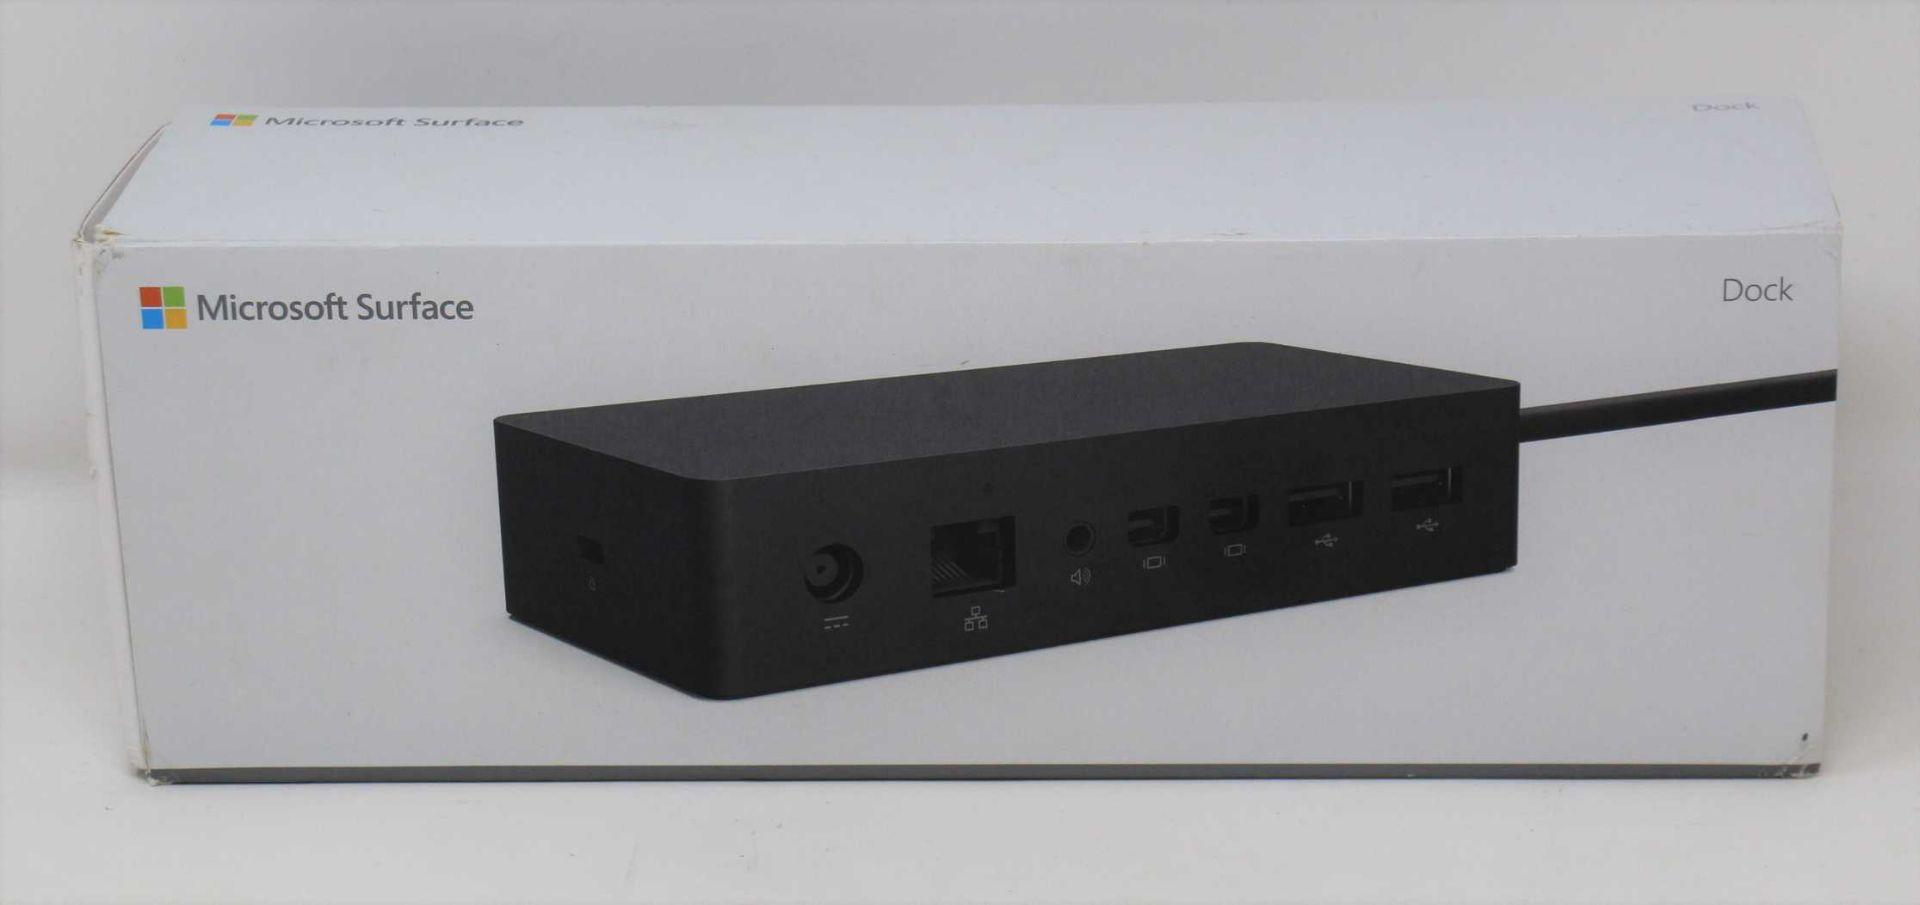 A boxed as new Microsoft Surface Dock PF3-00012 (Box sealed, some damage to box).